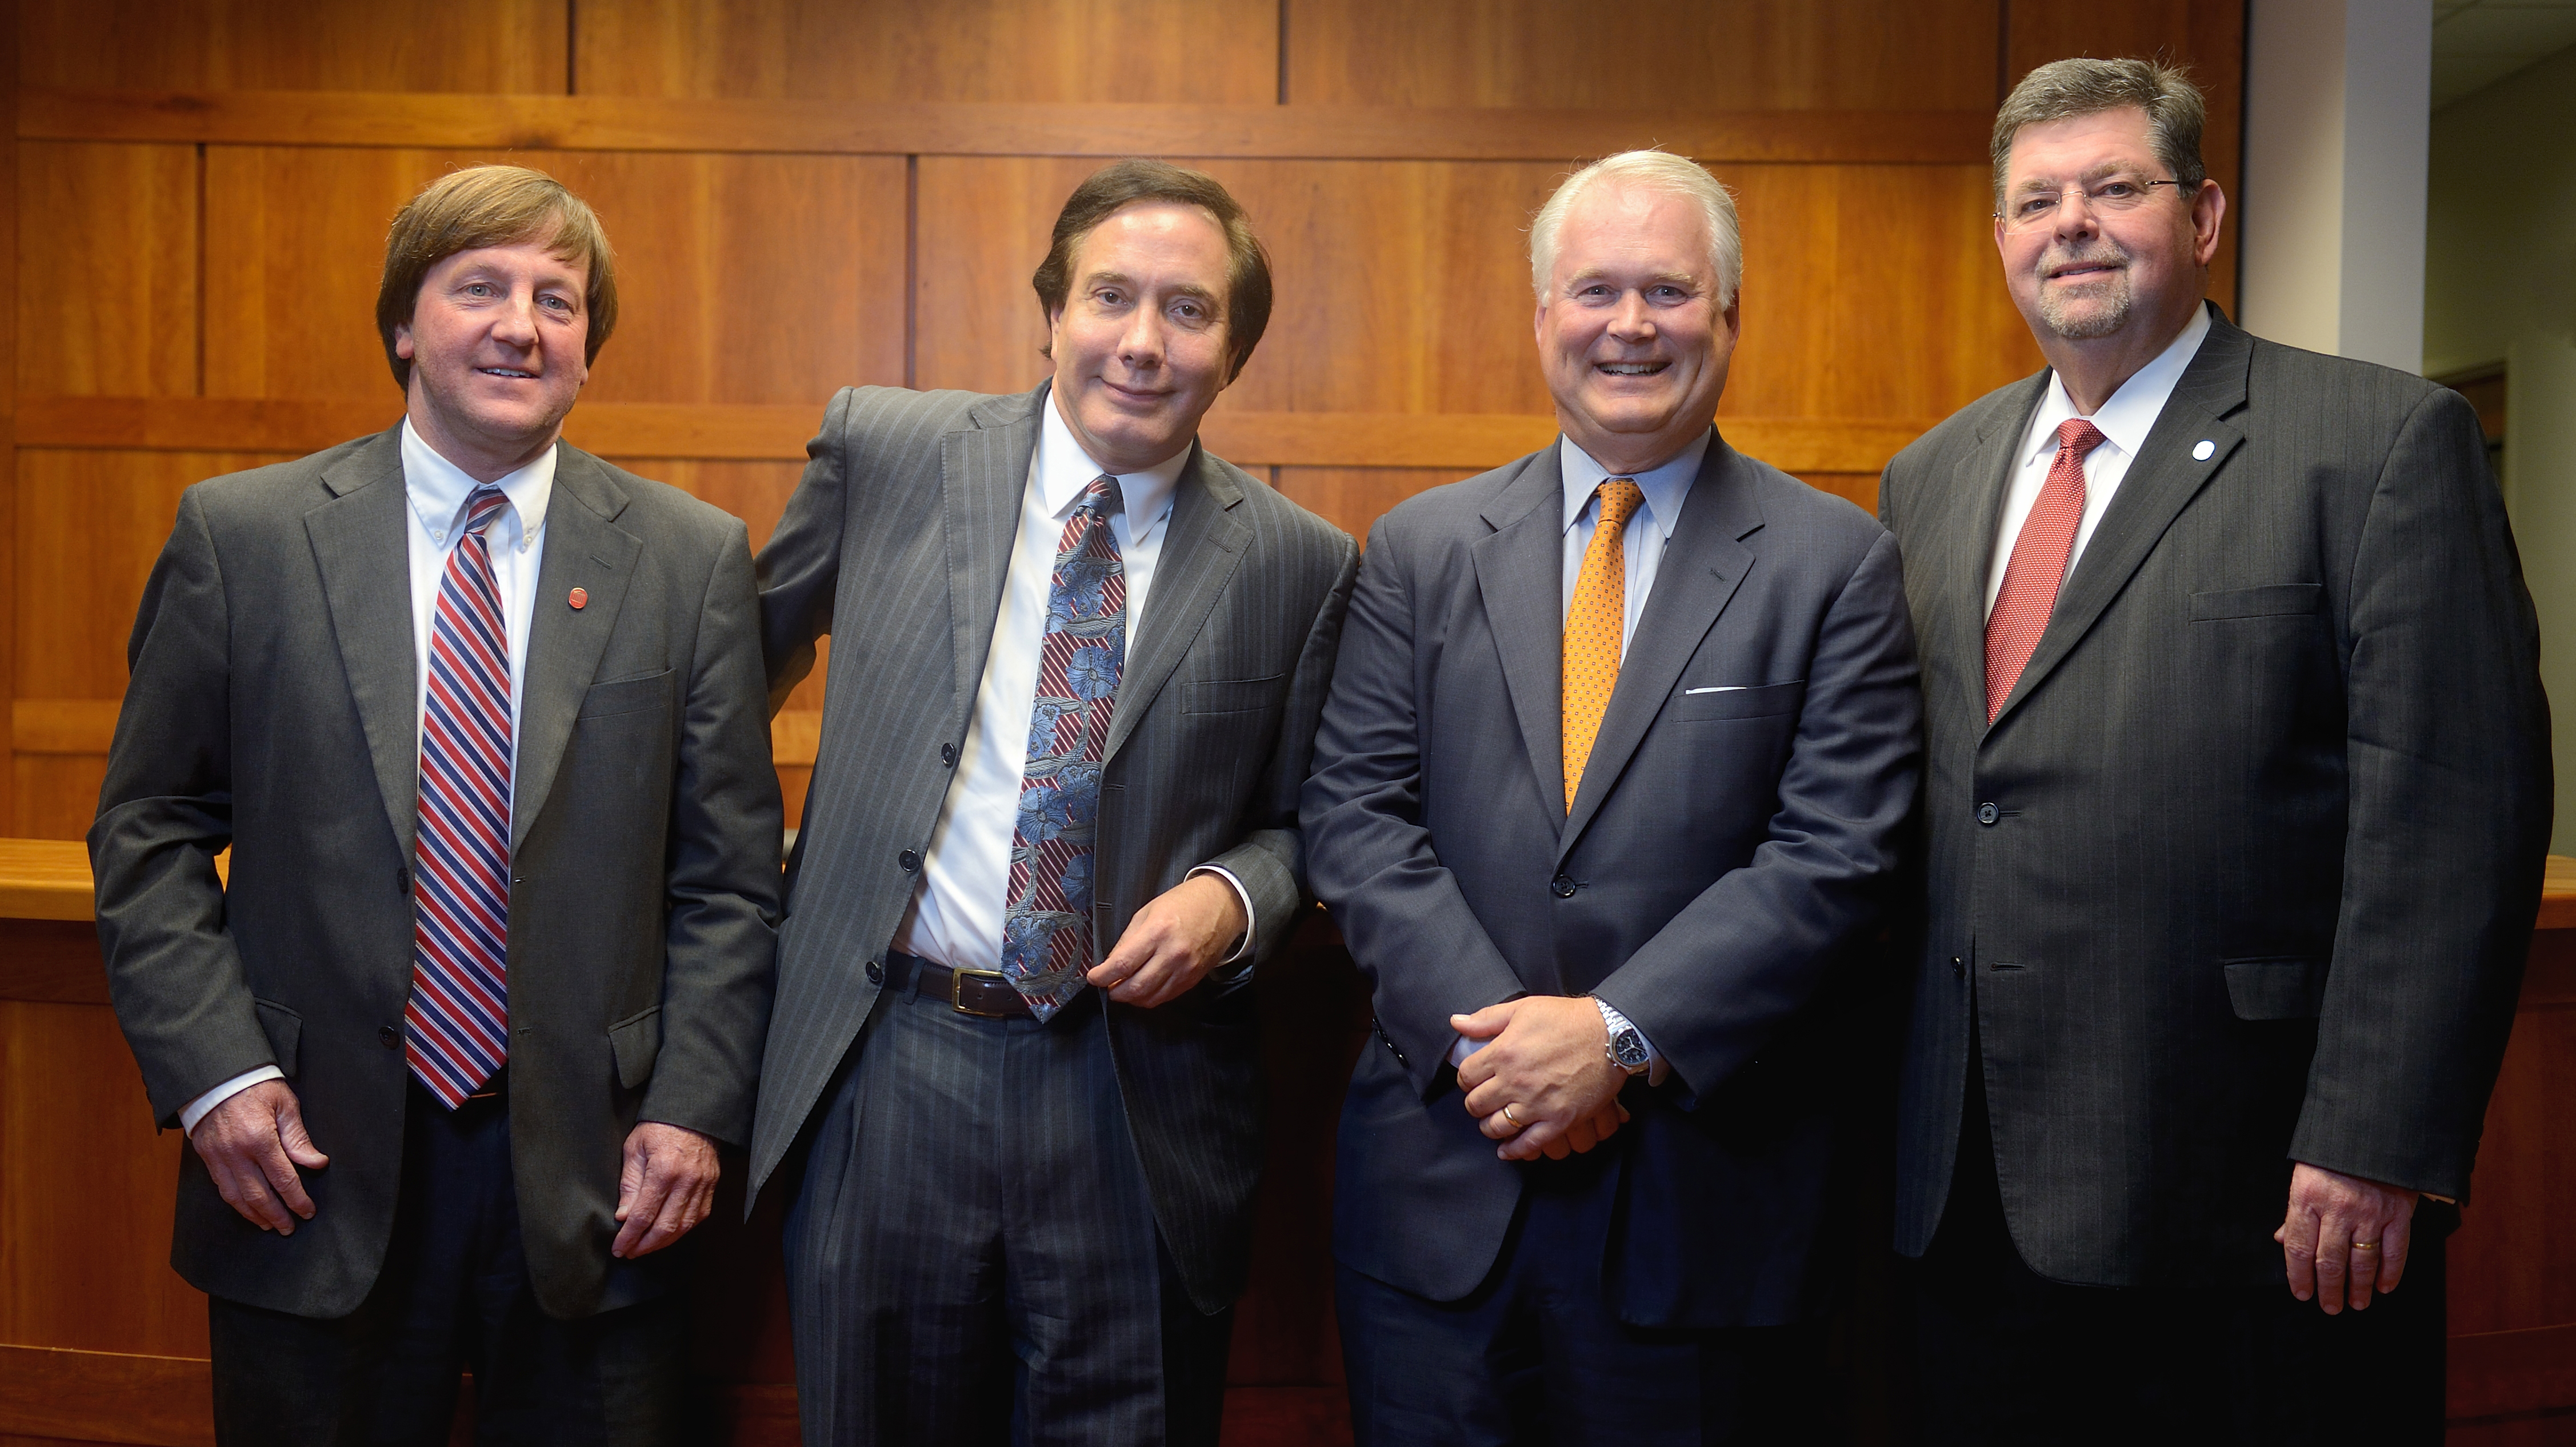 KPMG Establishes Chair of Accountancy at UM - Ole Miss News